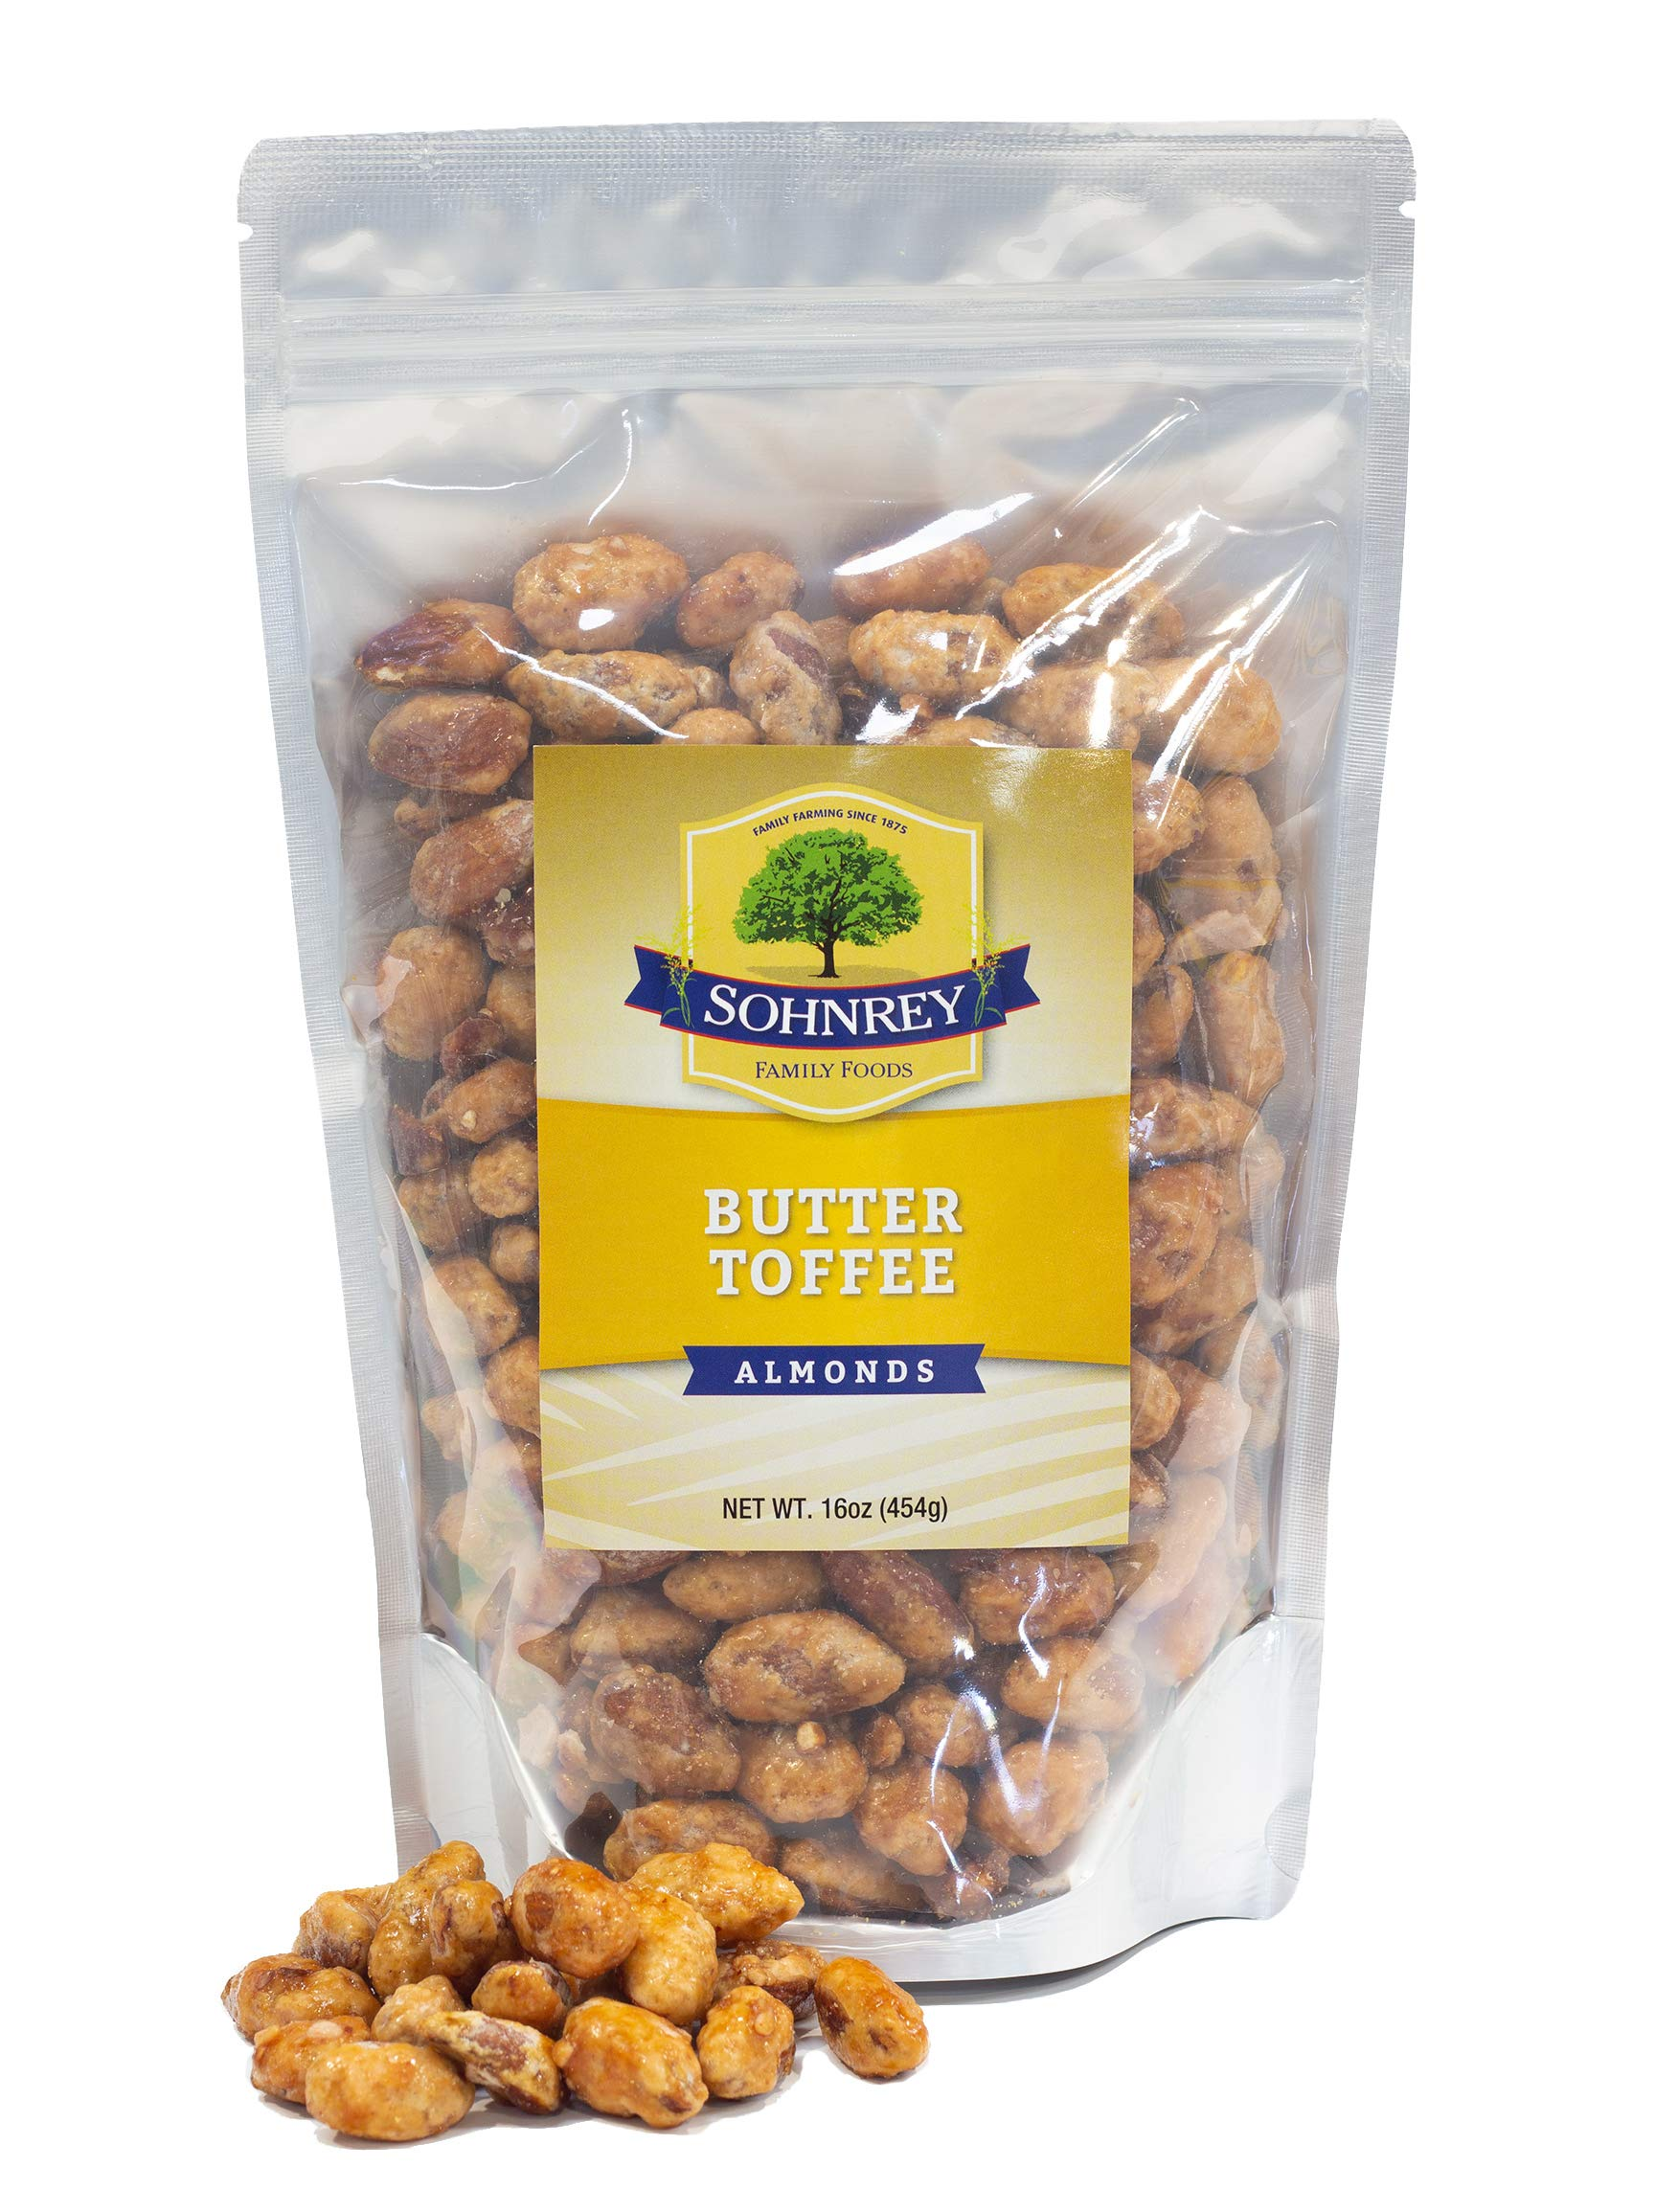 Butter Toffee Almonds Fresh Gourmet Sweet and Salty Crunch Resealable Bag from Sohnrey Family Foods (1 lb) by Sohnrey Family Foods